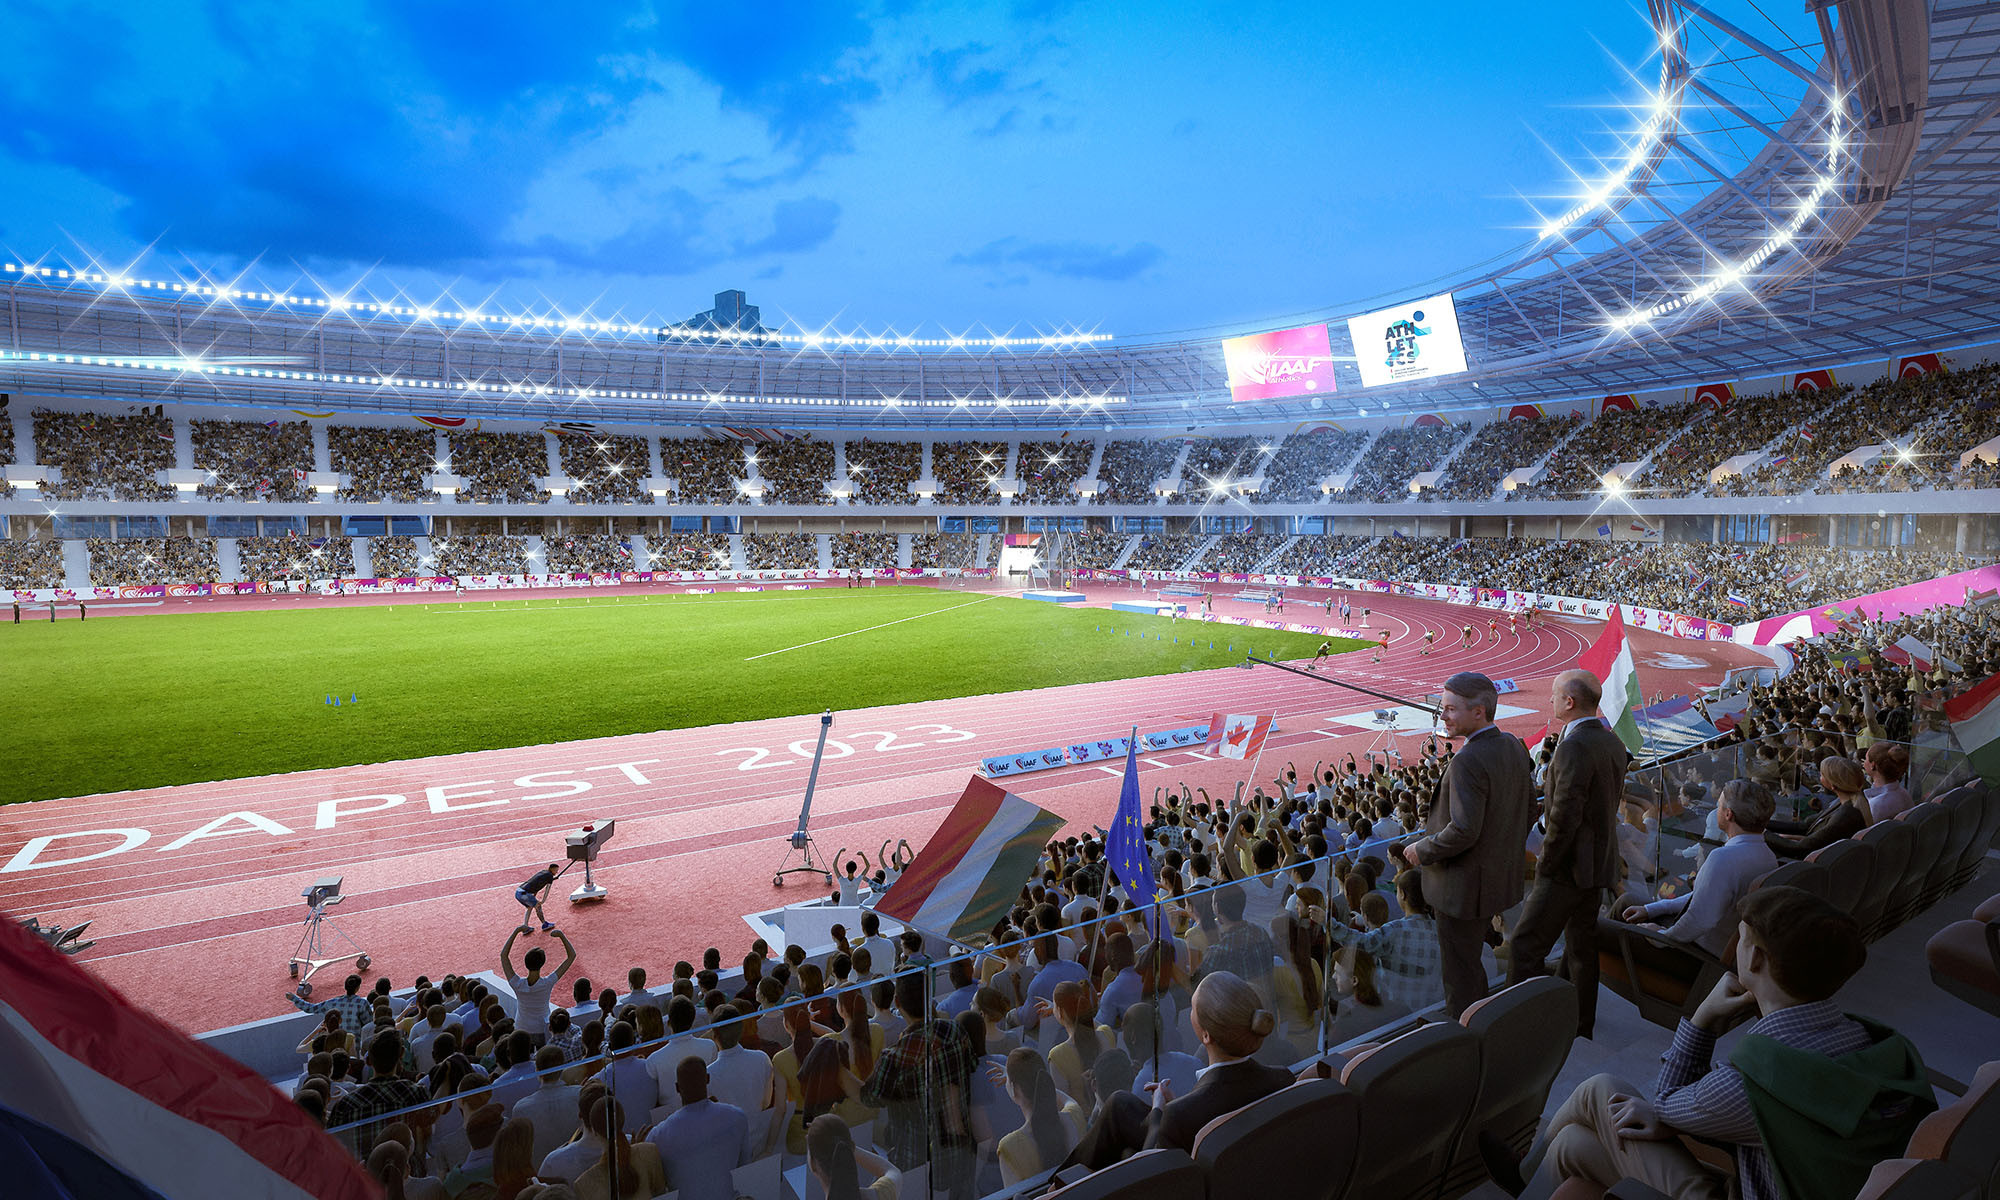 Budapest wants to deliver major events, like the 2023 IAAF World Championships in a